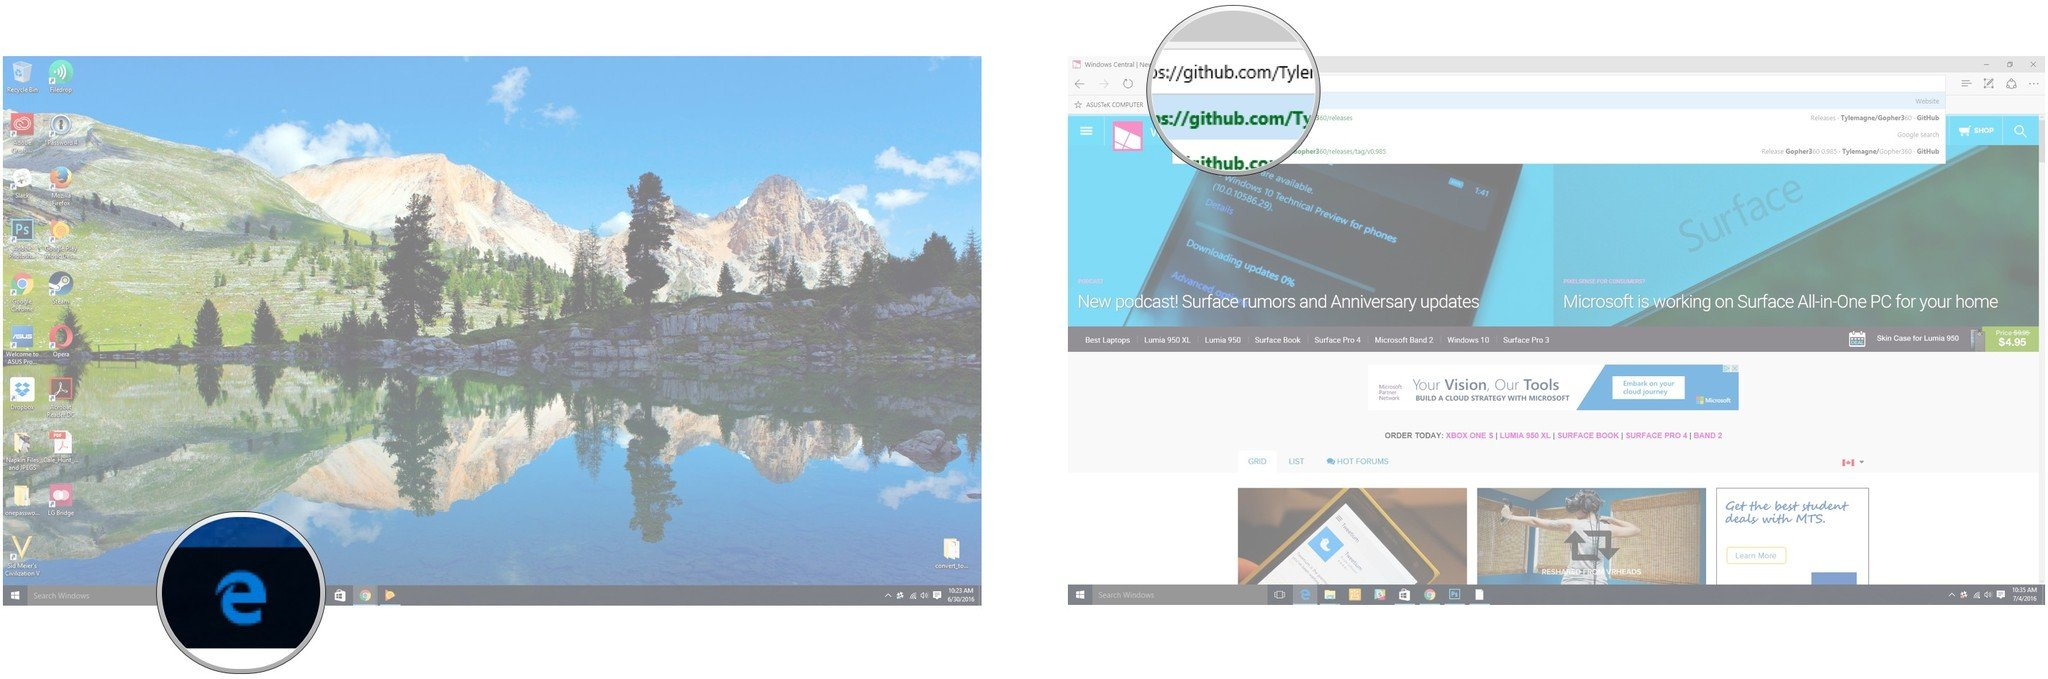 medium resolution of launch your web browser navigate to the gopher360 webpage